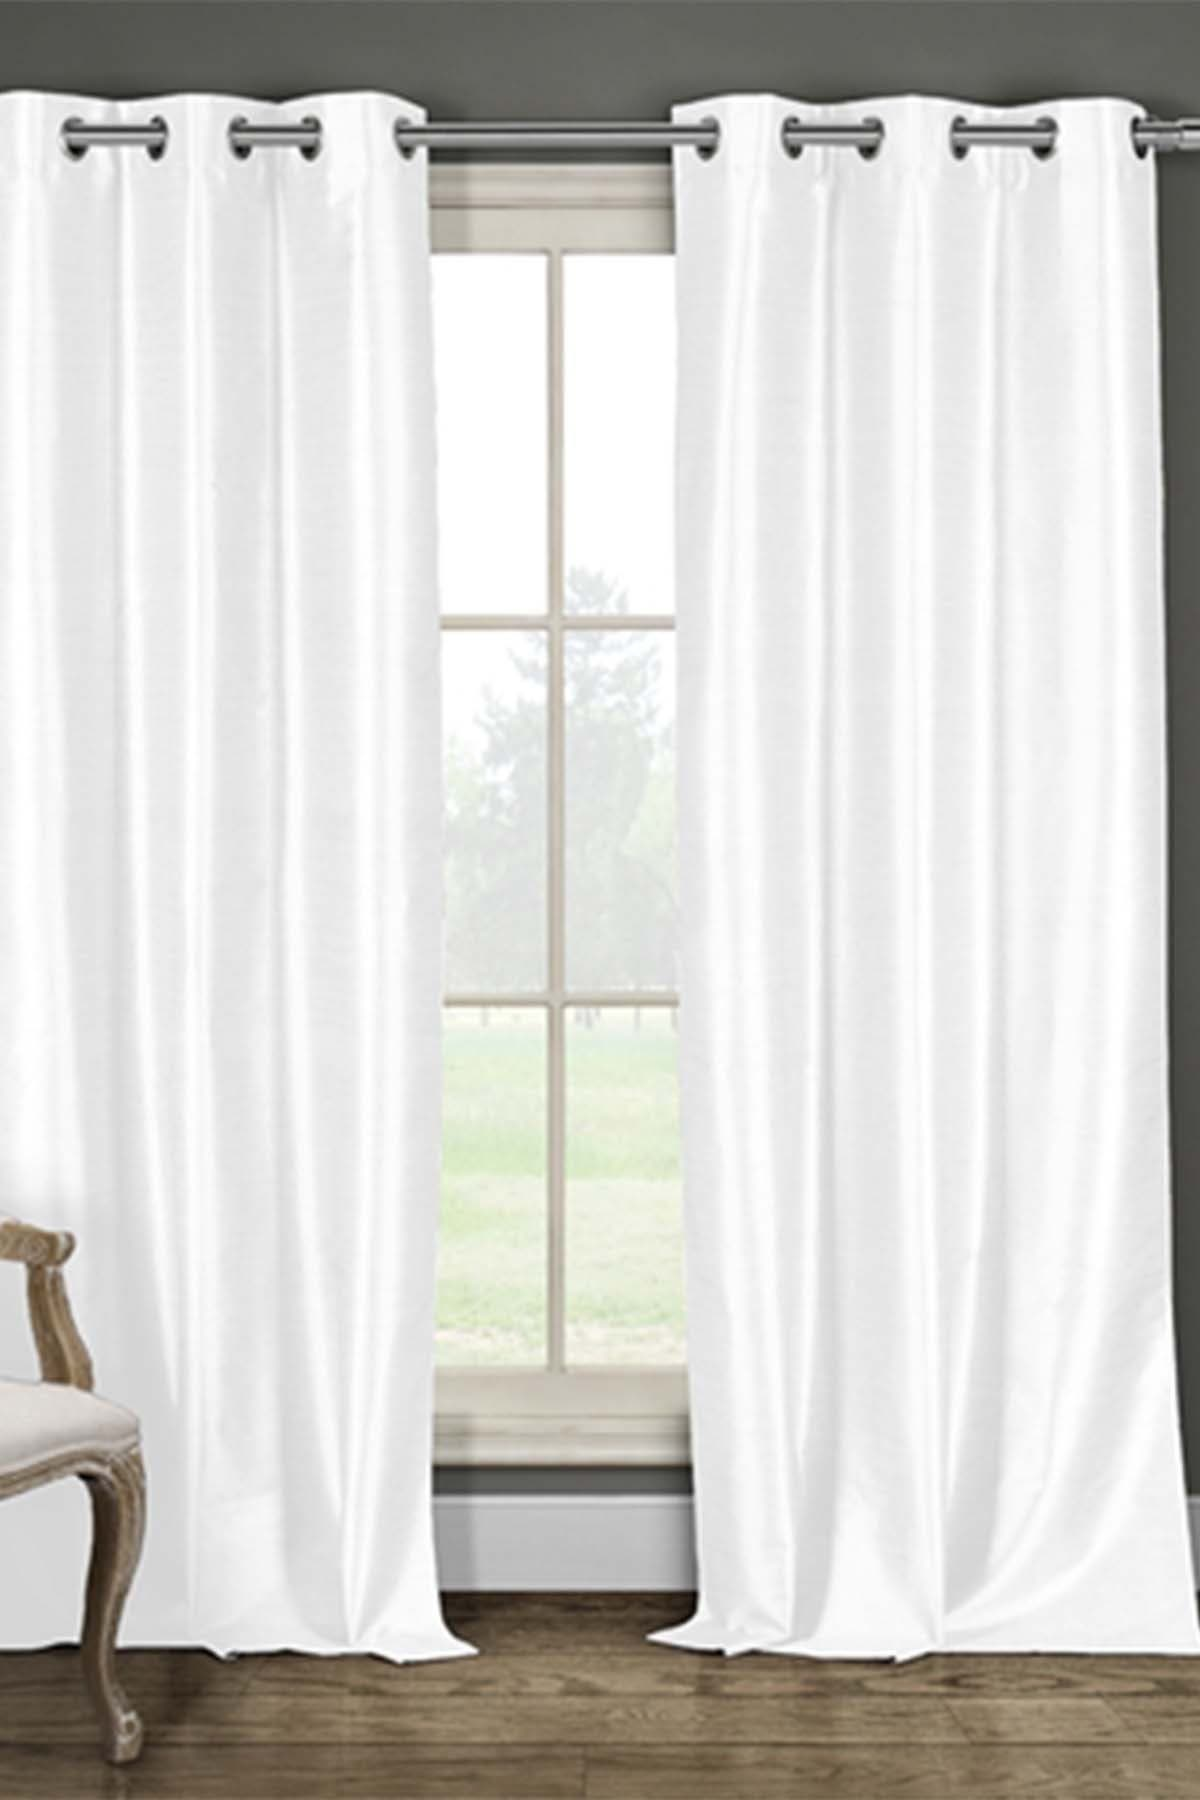 Image of Duck River Textile Daenery's Faux Silk Foamback Grommet Curtains - Set of 2 - White